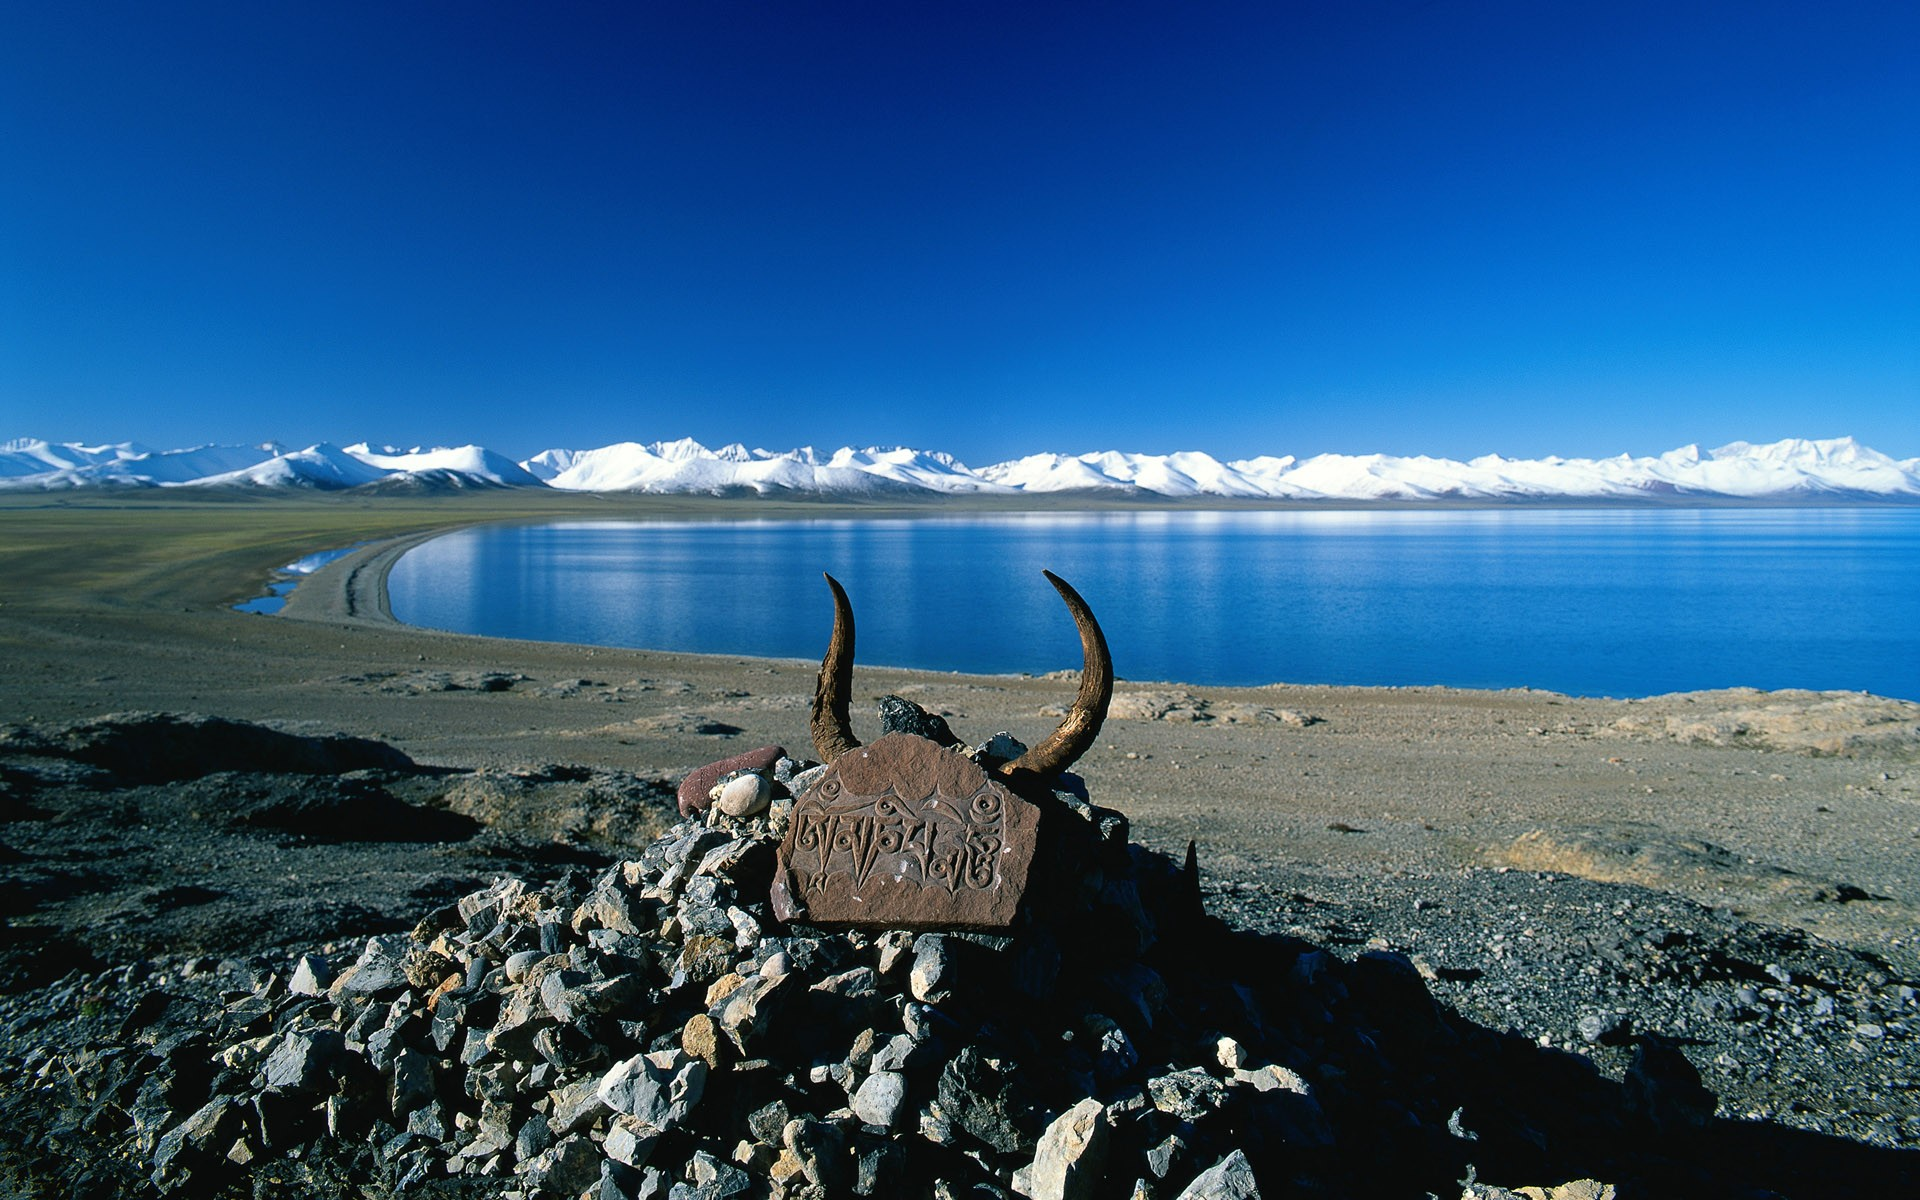 Original Iphone Wallpaper Earth Nagqu Tibet Autonomous Region China Full Hd Wallpaper